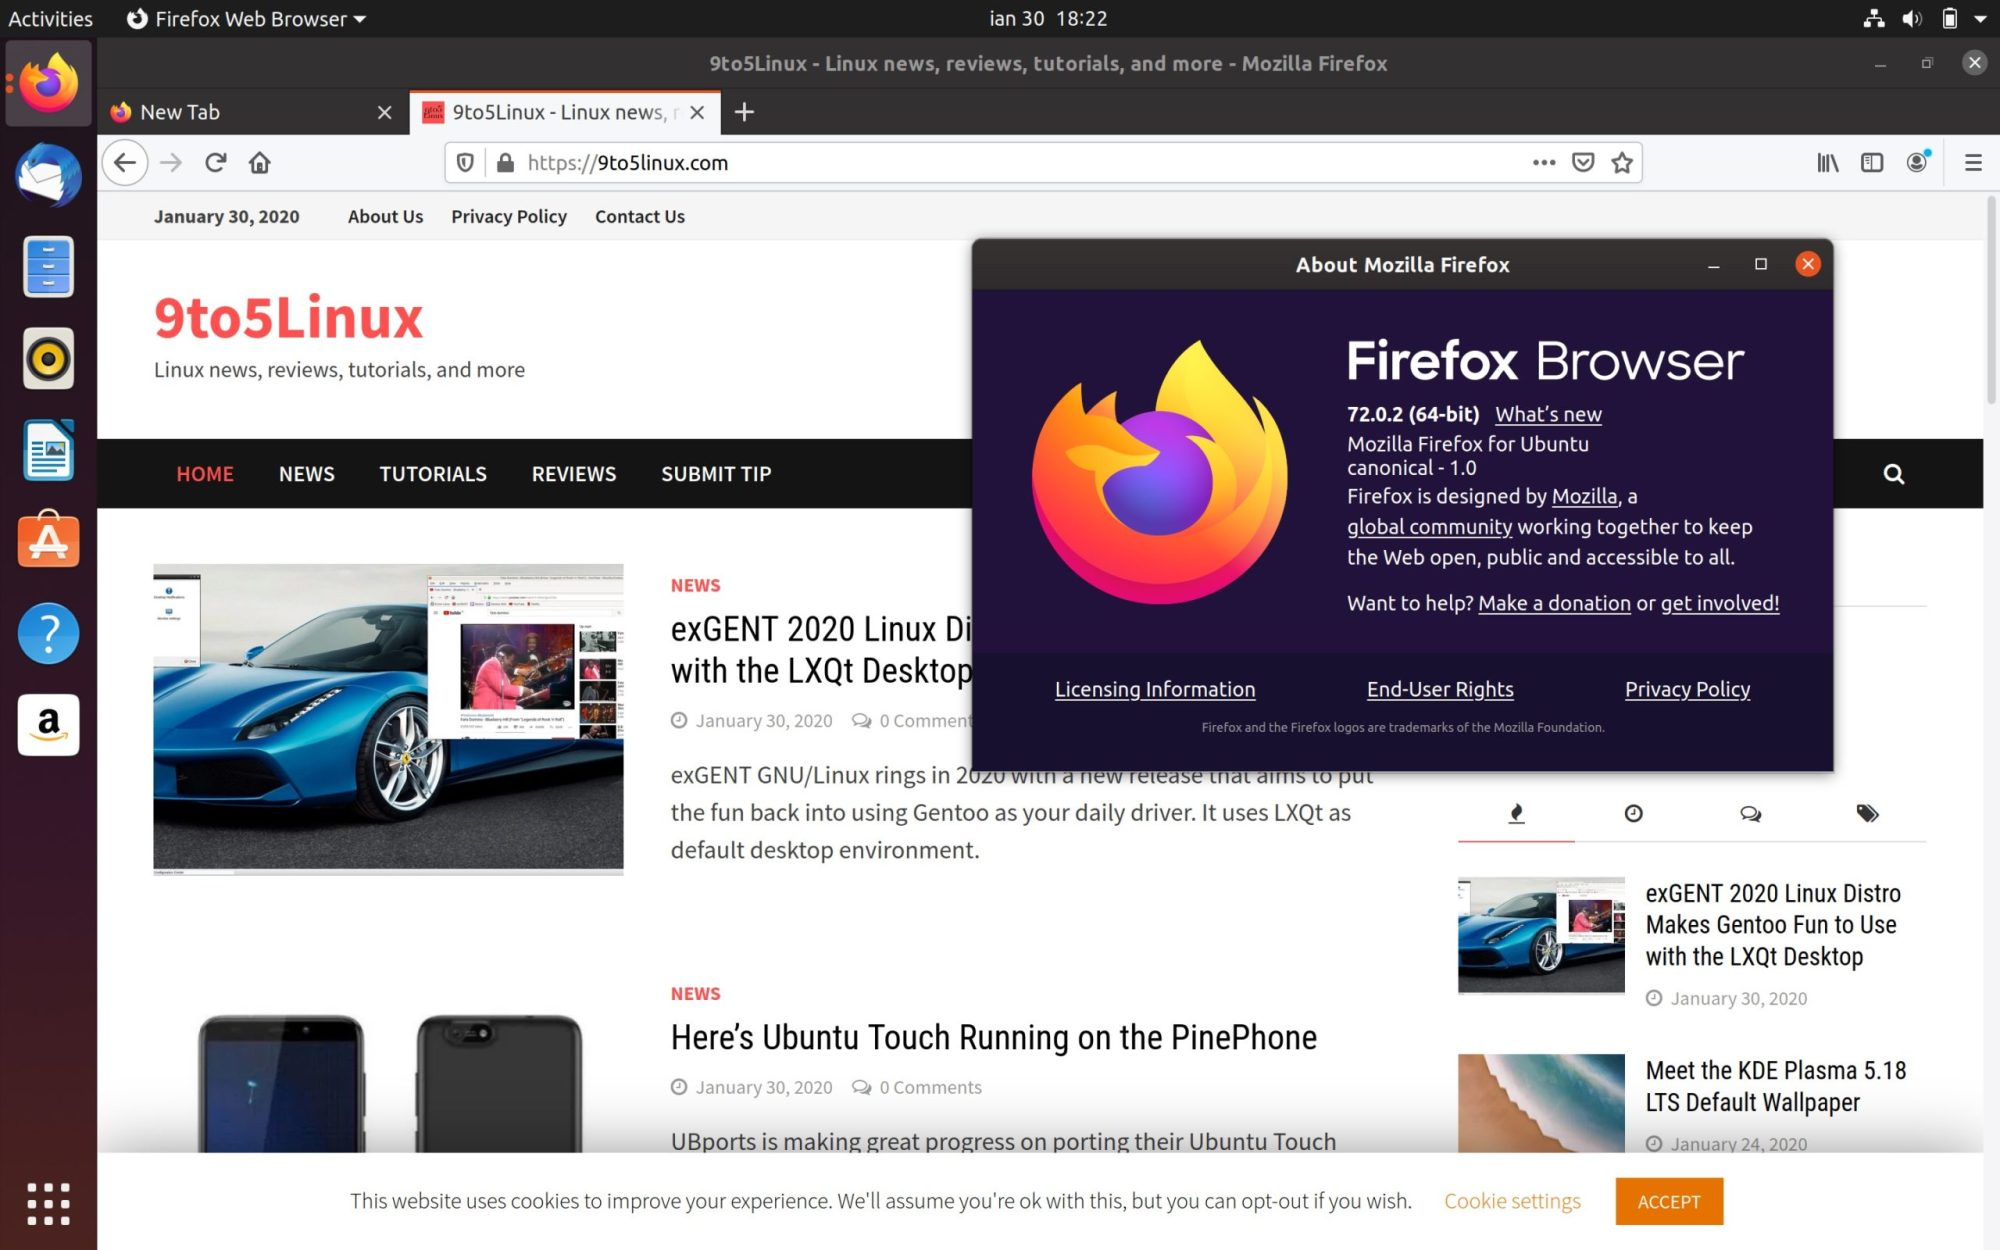 Firefox 72 0 2 Lands In Ubuntu S Repos Minor Regressions Fixed 9to5linux